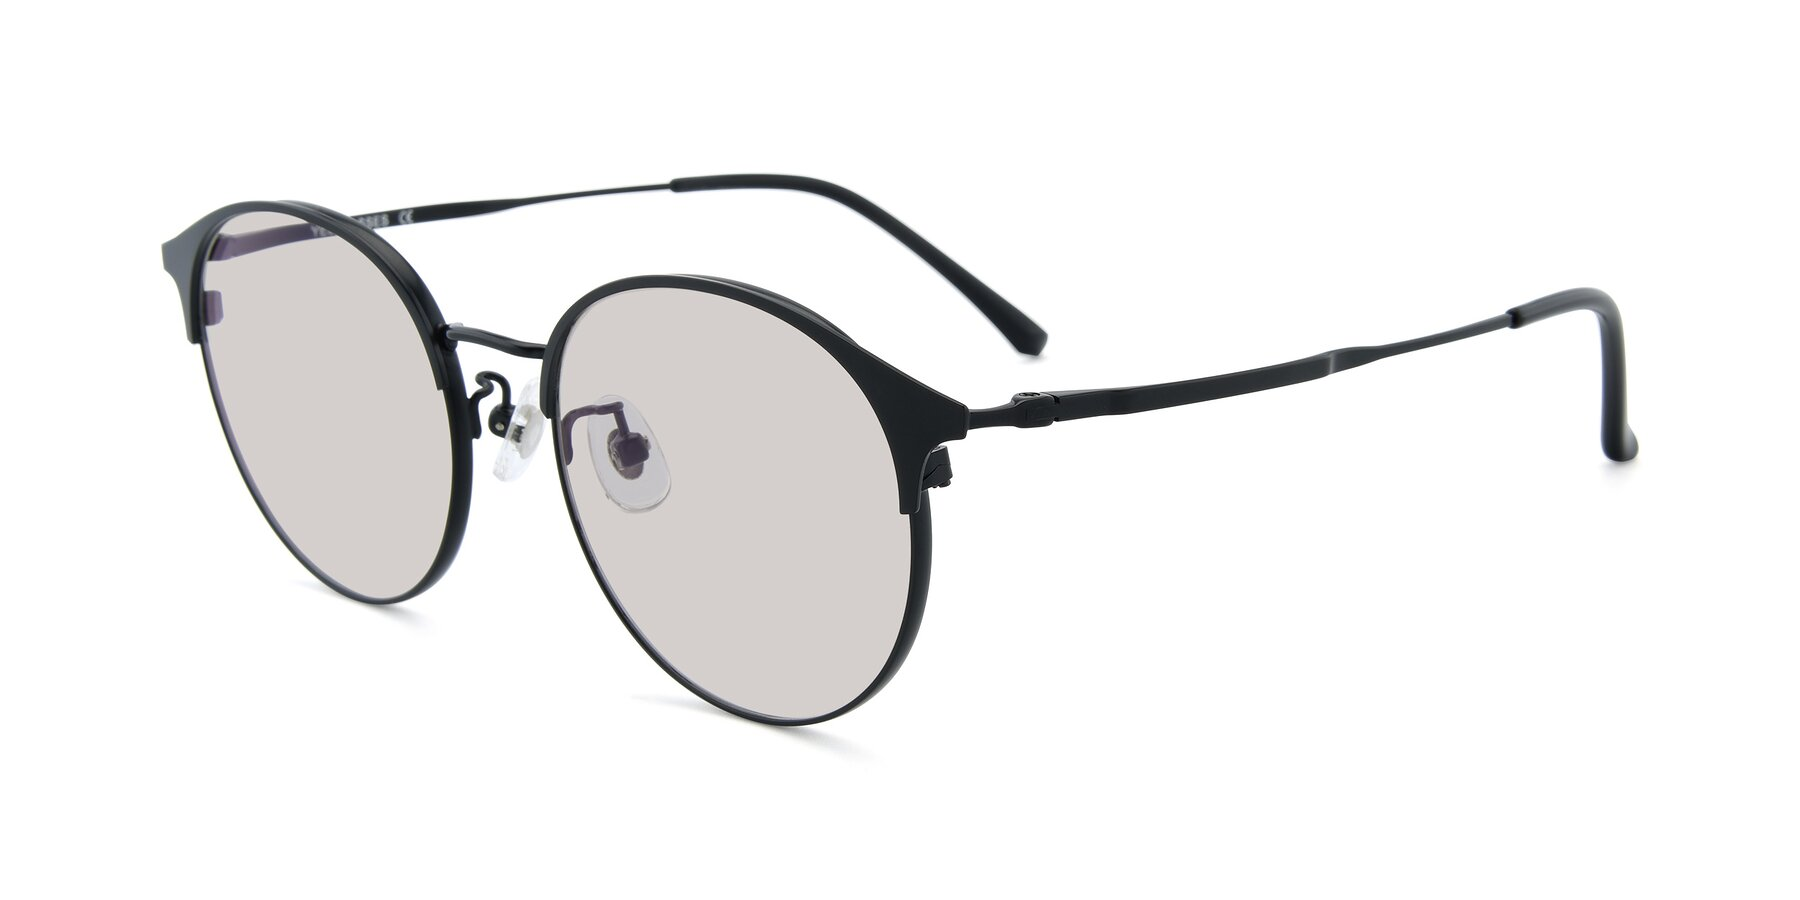 Angle of XC-8031 in Matte Black with Light Brown Tinted Lenses